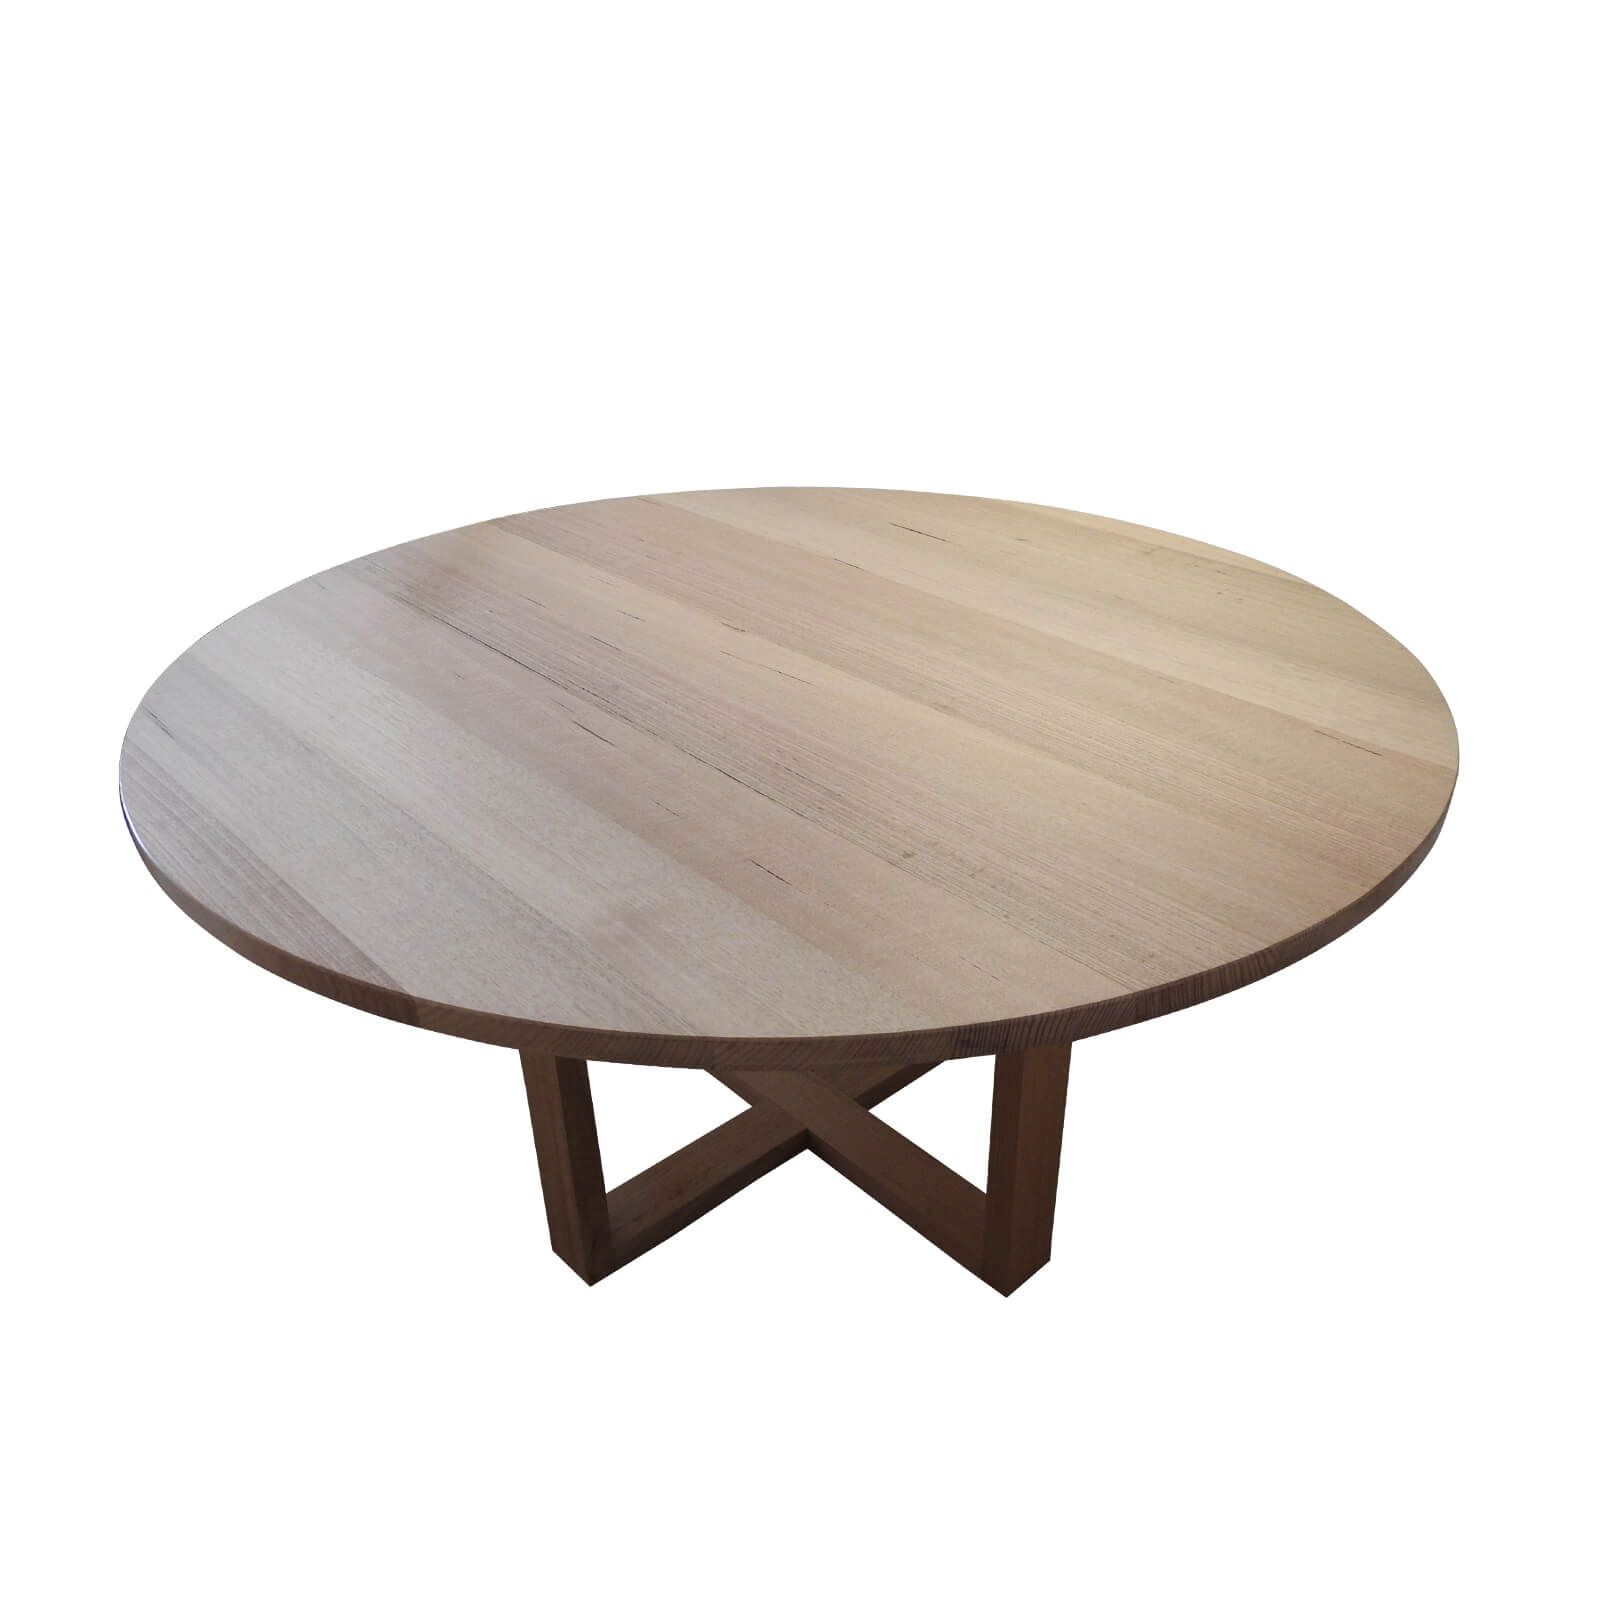 Two Design Lovers Cabarita designs Reverie Victorian Ash round dining table top view